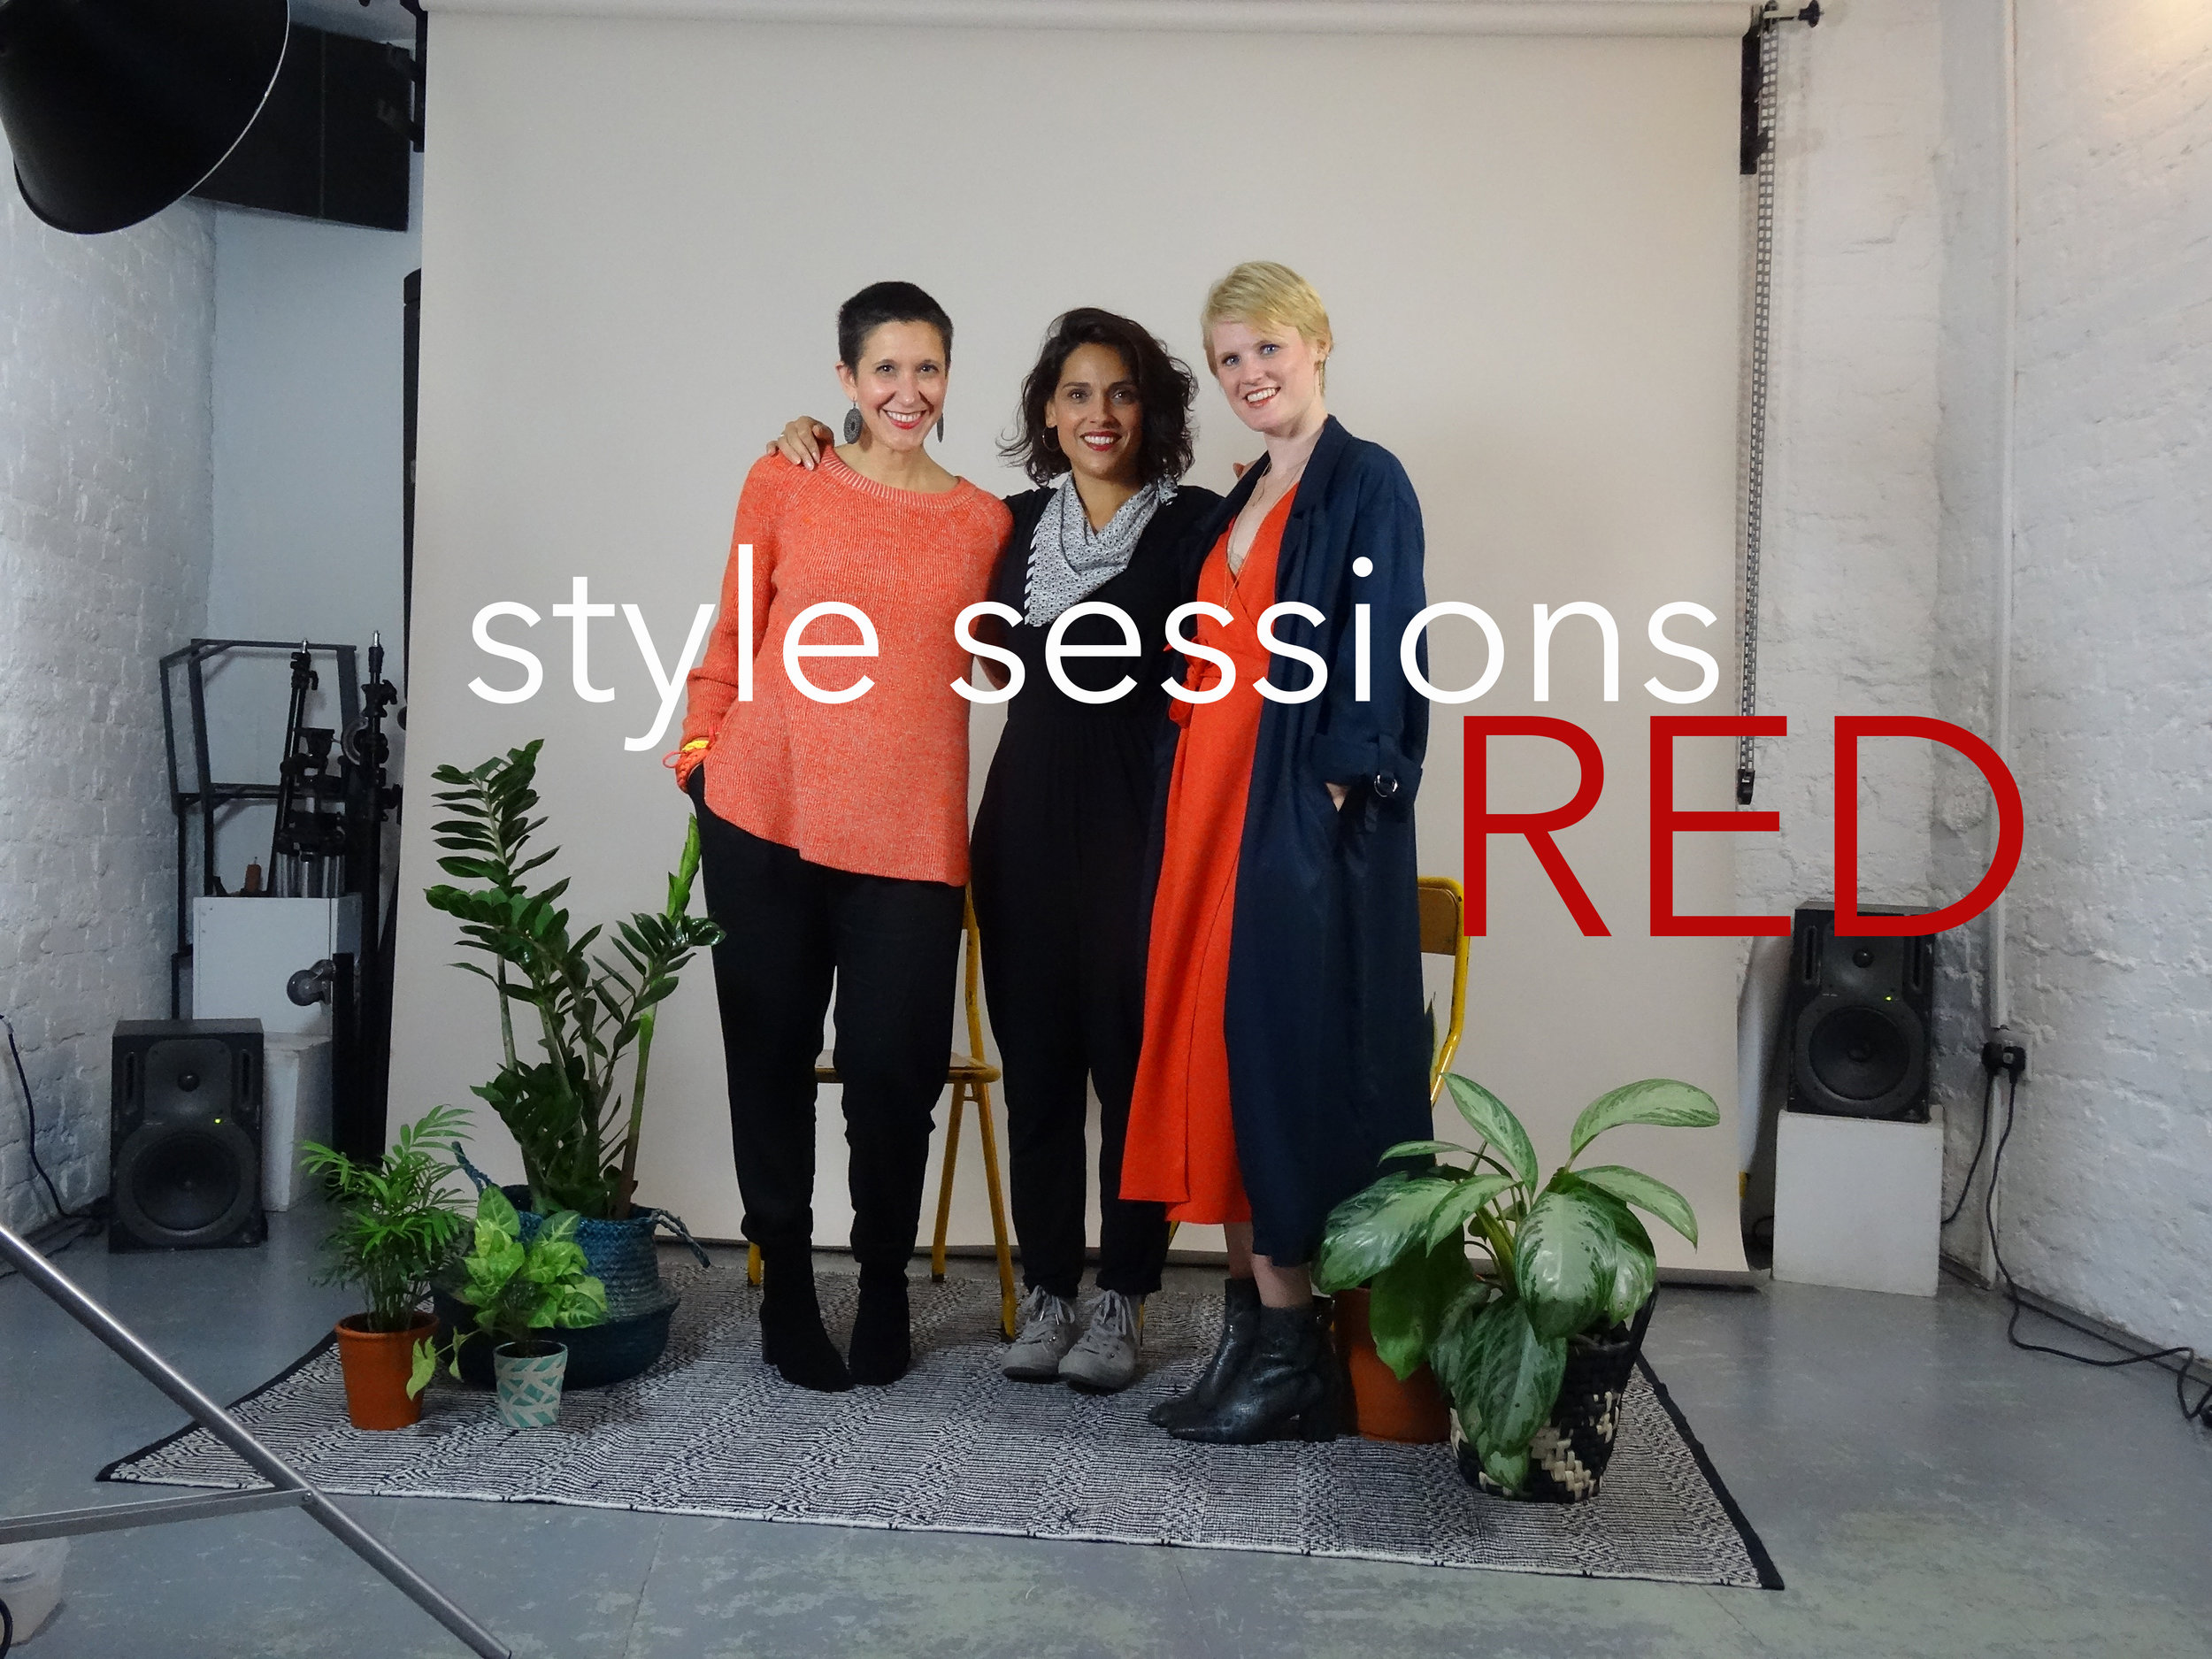 stylesessionsred.jpg